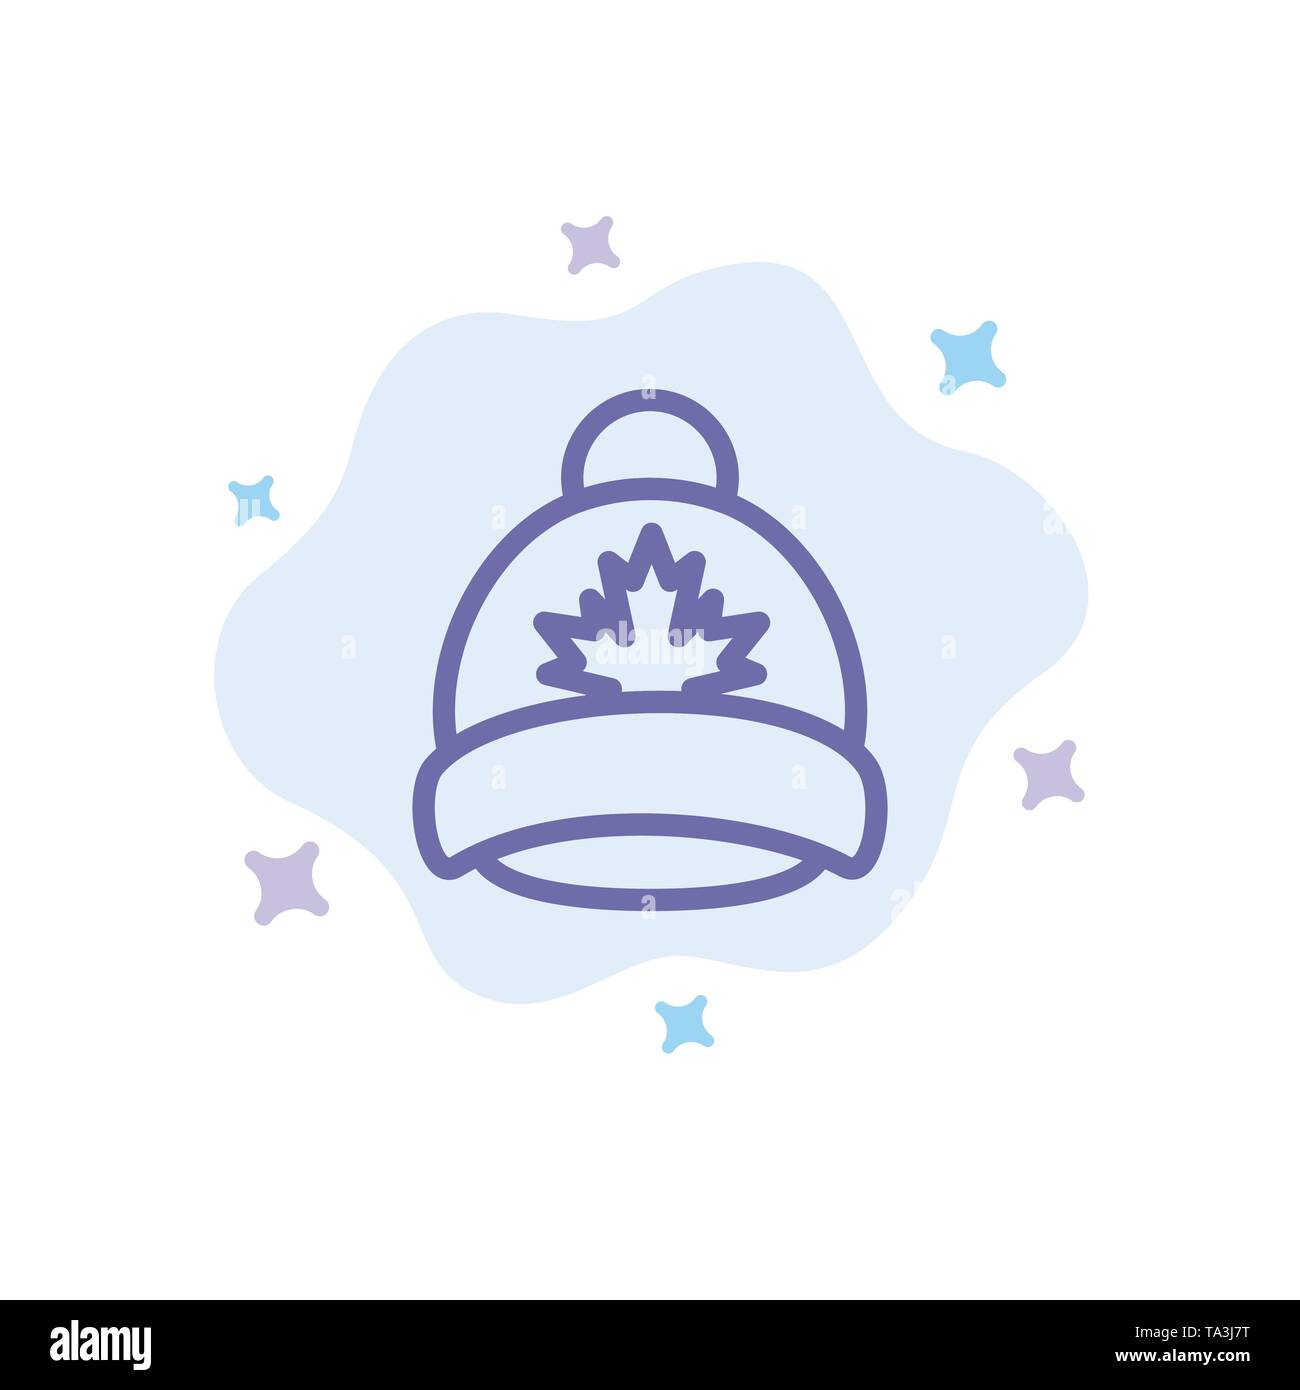 Hat, Cap, Leaf, Canada Blue Icon on Abstract Cloud Background - Stock Image